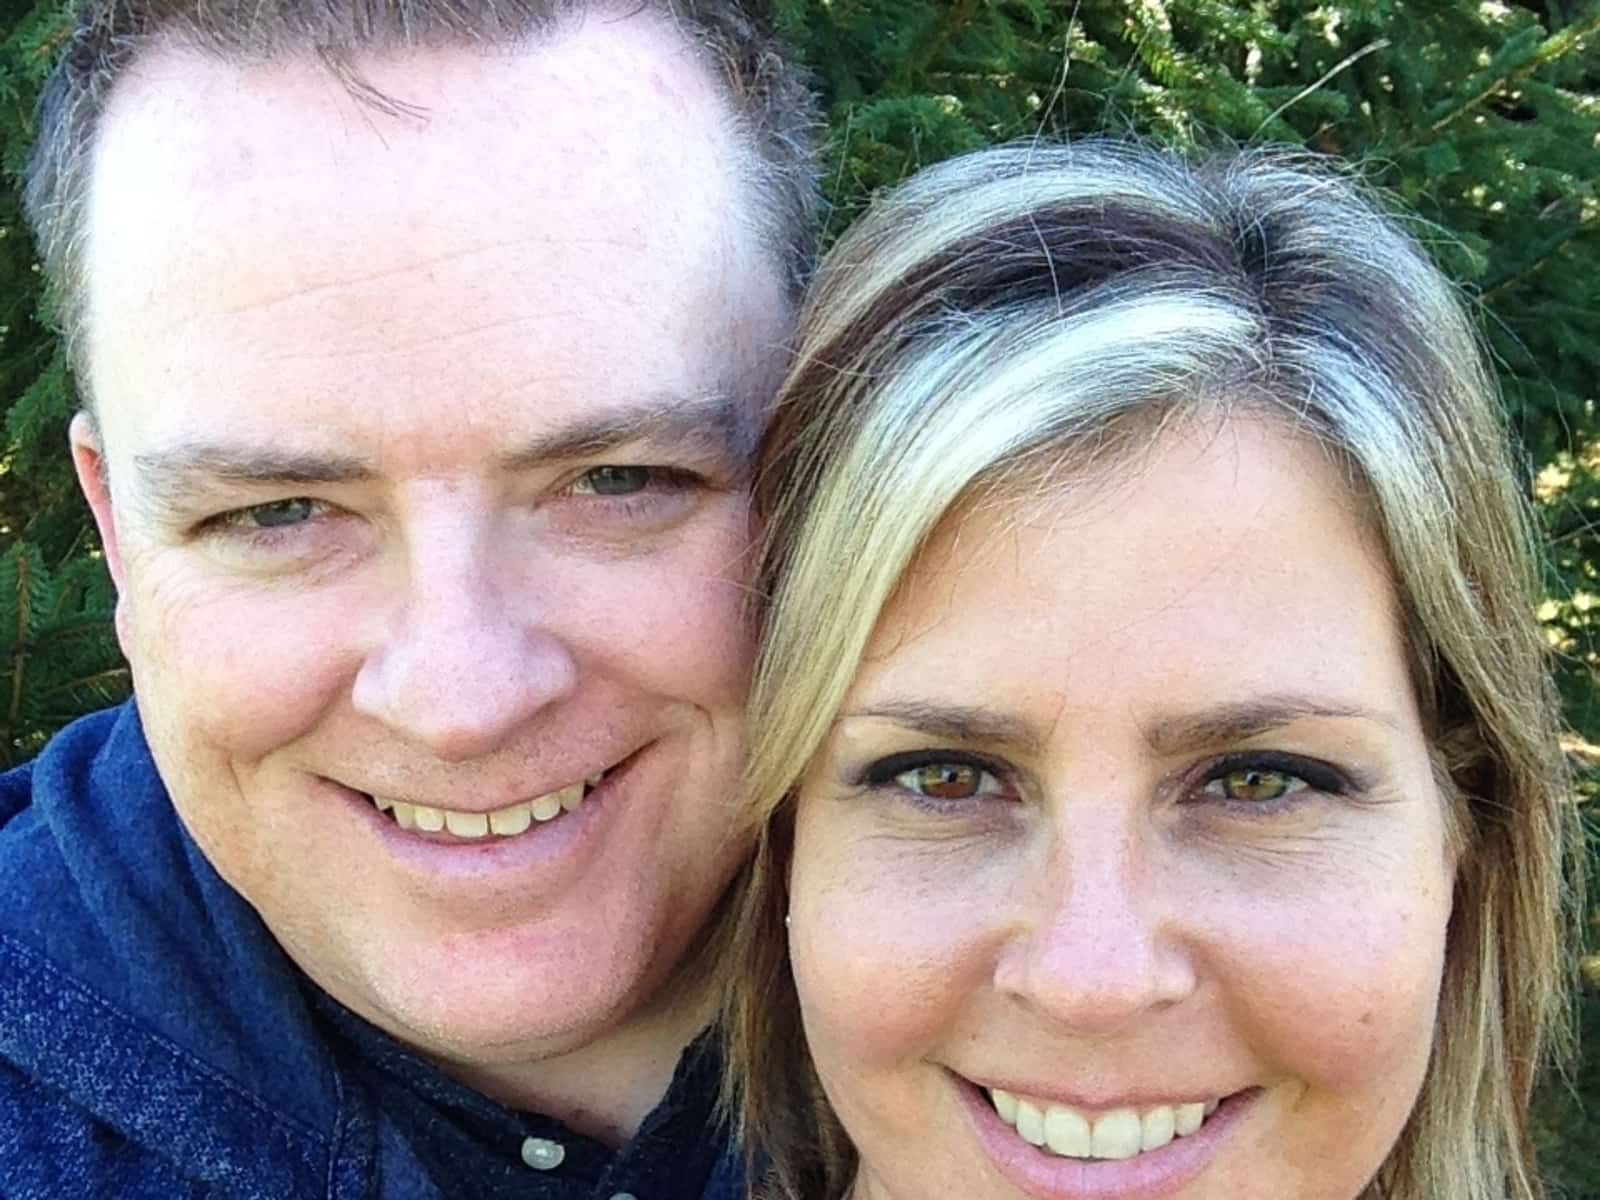 Jeff & Lori from Guelph, Ontario, Canada